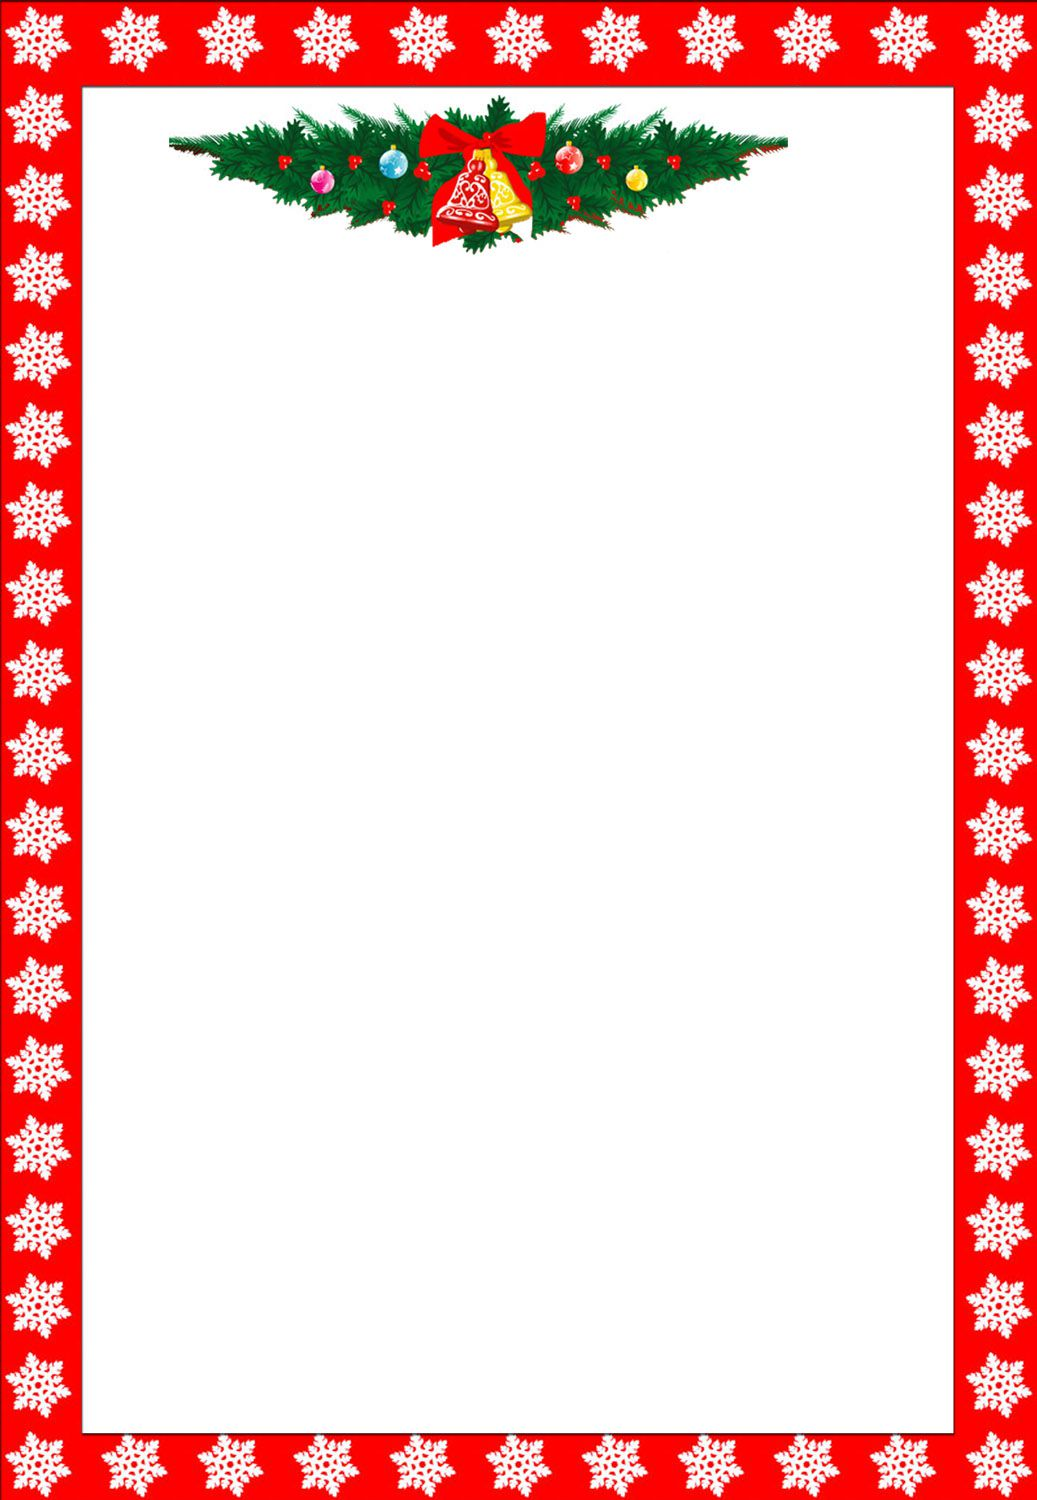 free word christmas border templates  487 Free Christmas Borders and Frames